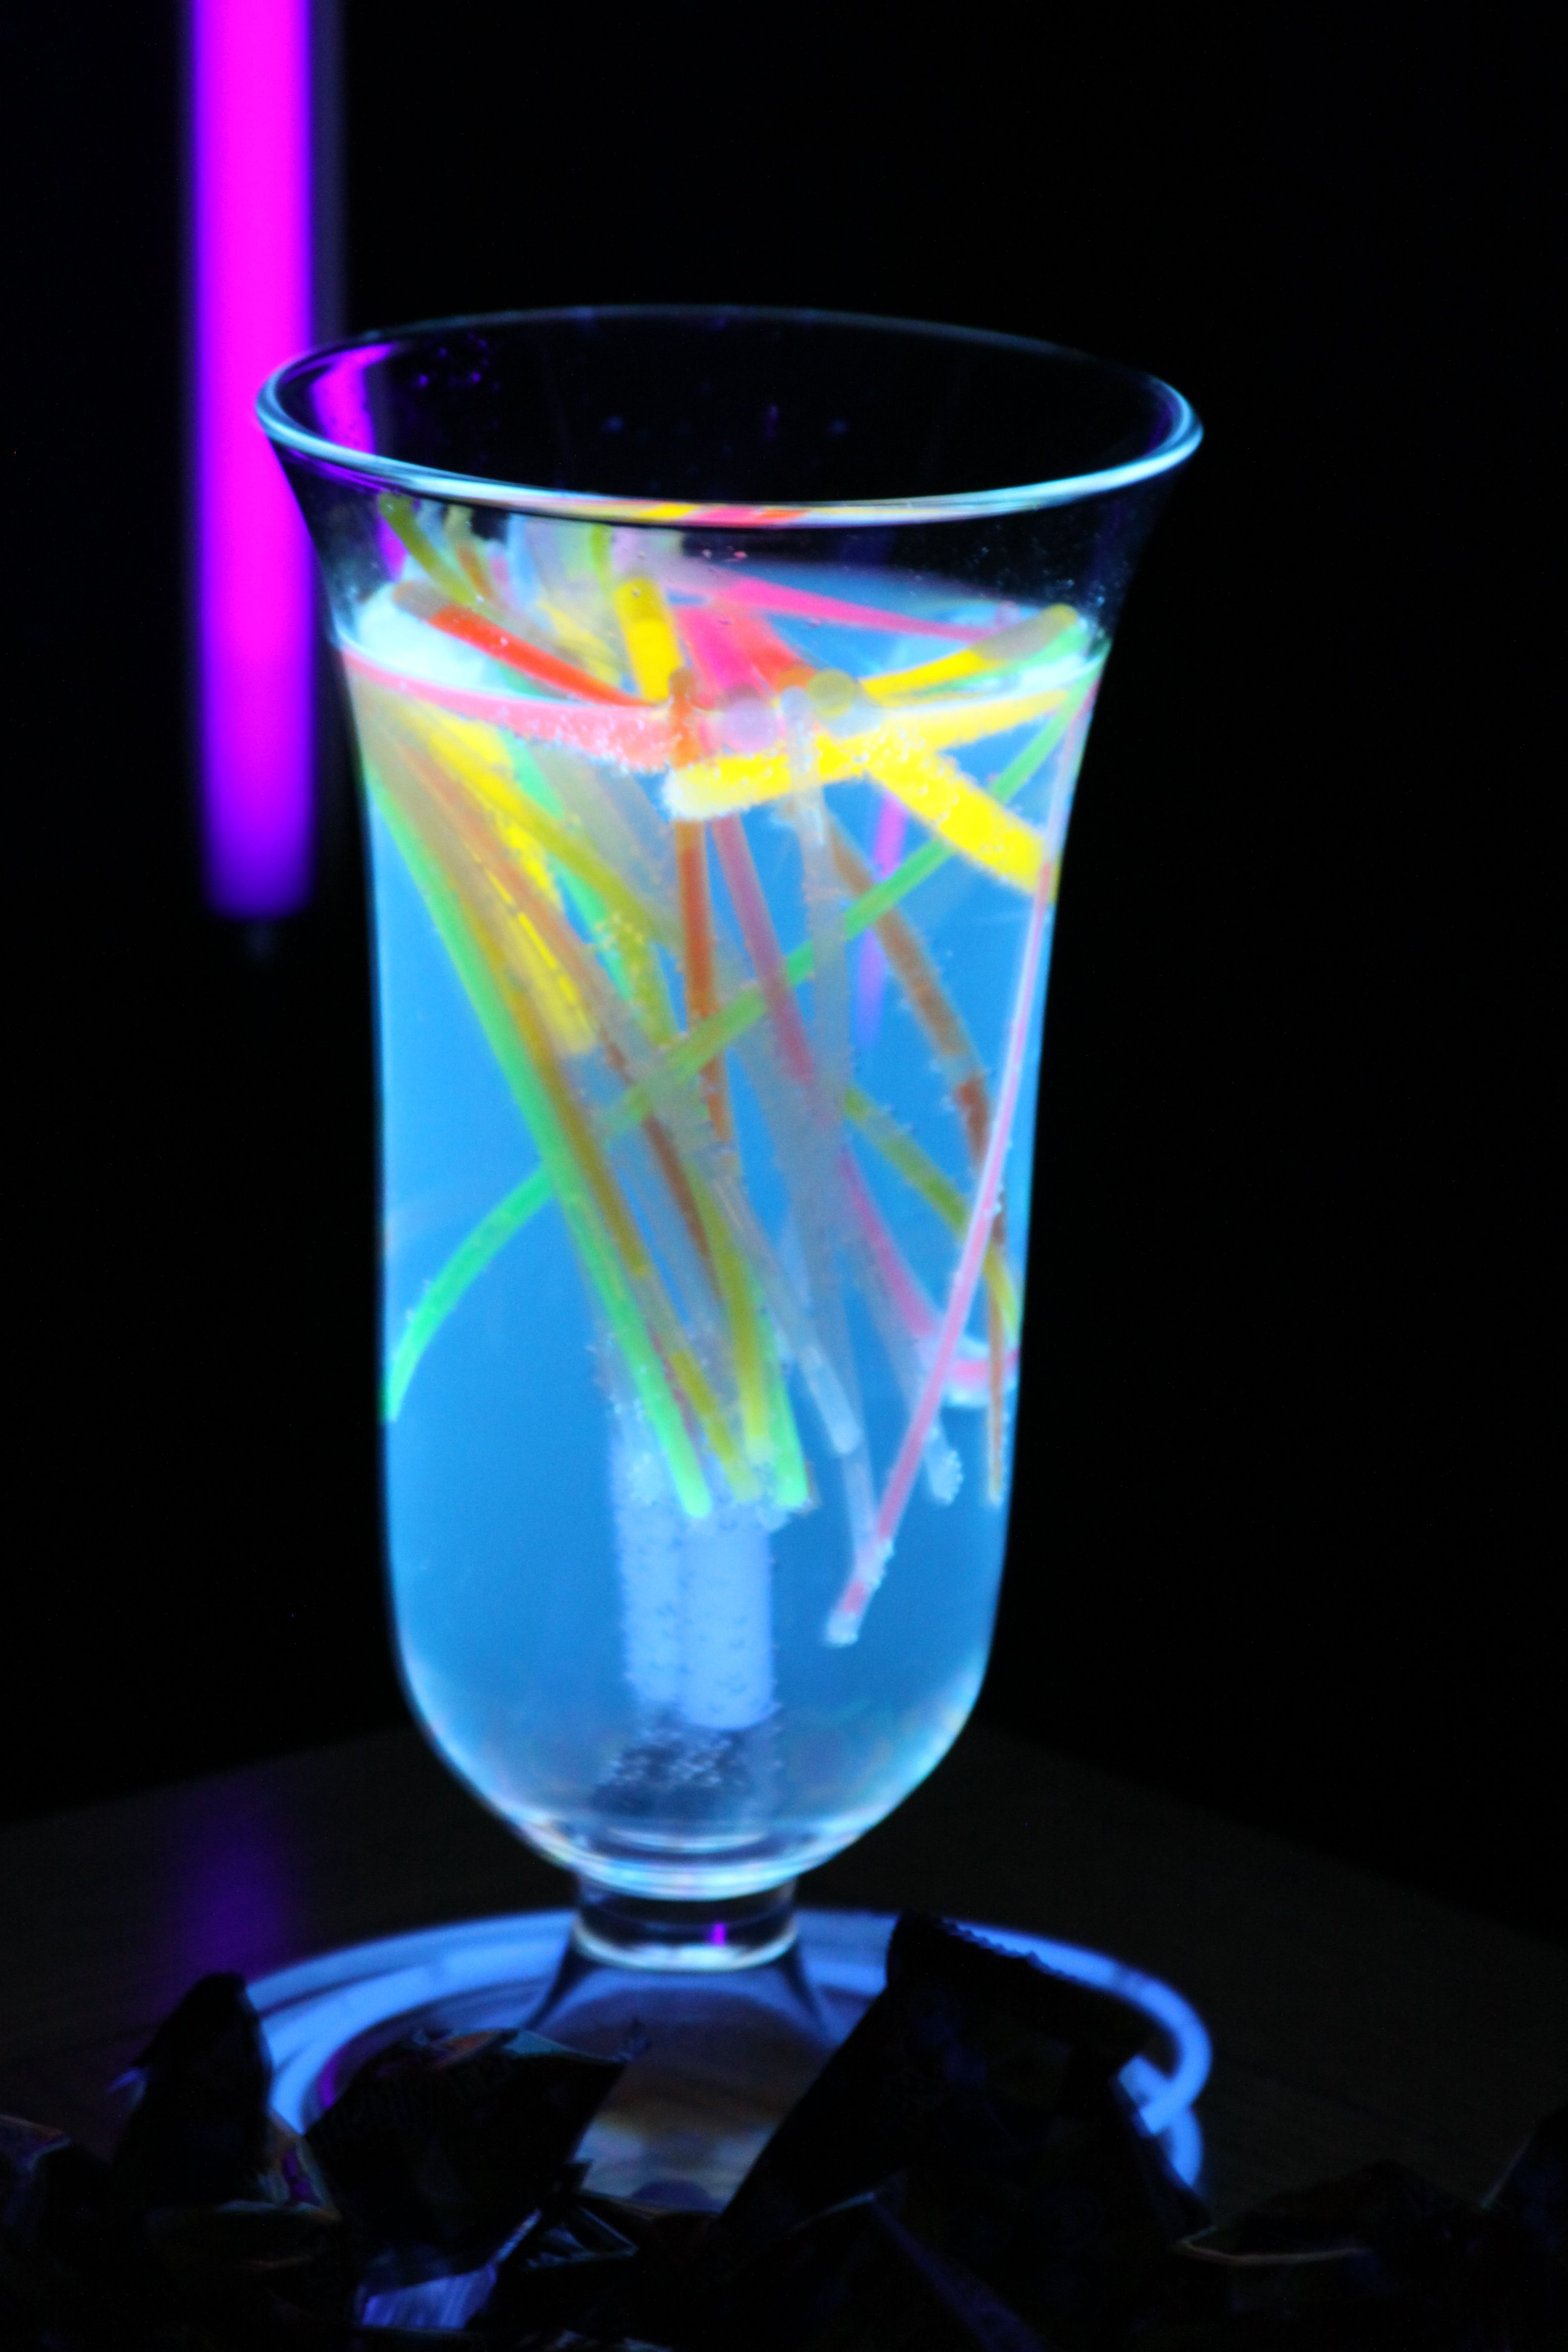 Black light party centerpiece tonic water glows in the dark easy easy to fill any vase add some glow sticksxt time im filling it with clear marbles then adding the glow sticks and tonic water great for black light reviewsmspy